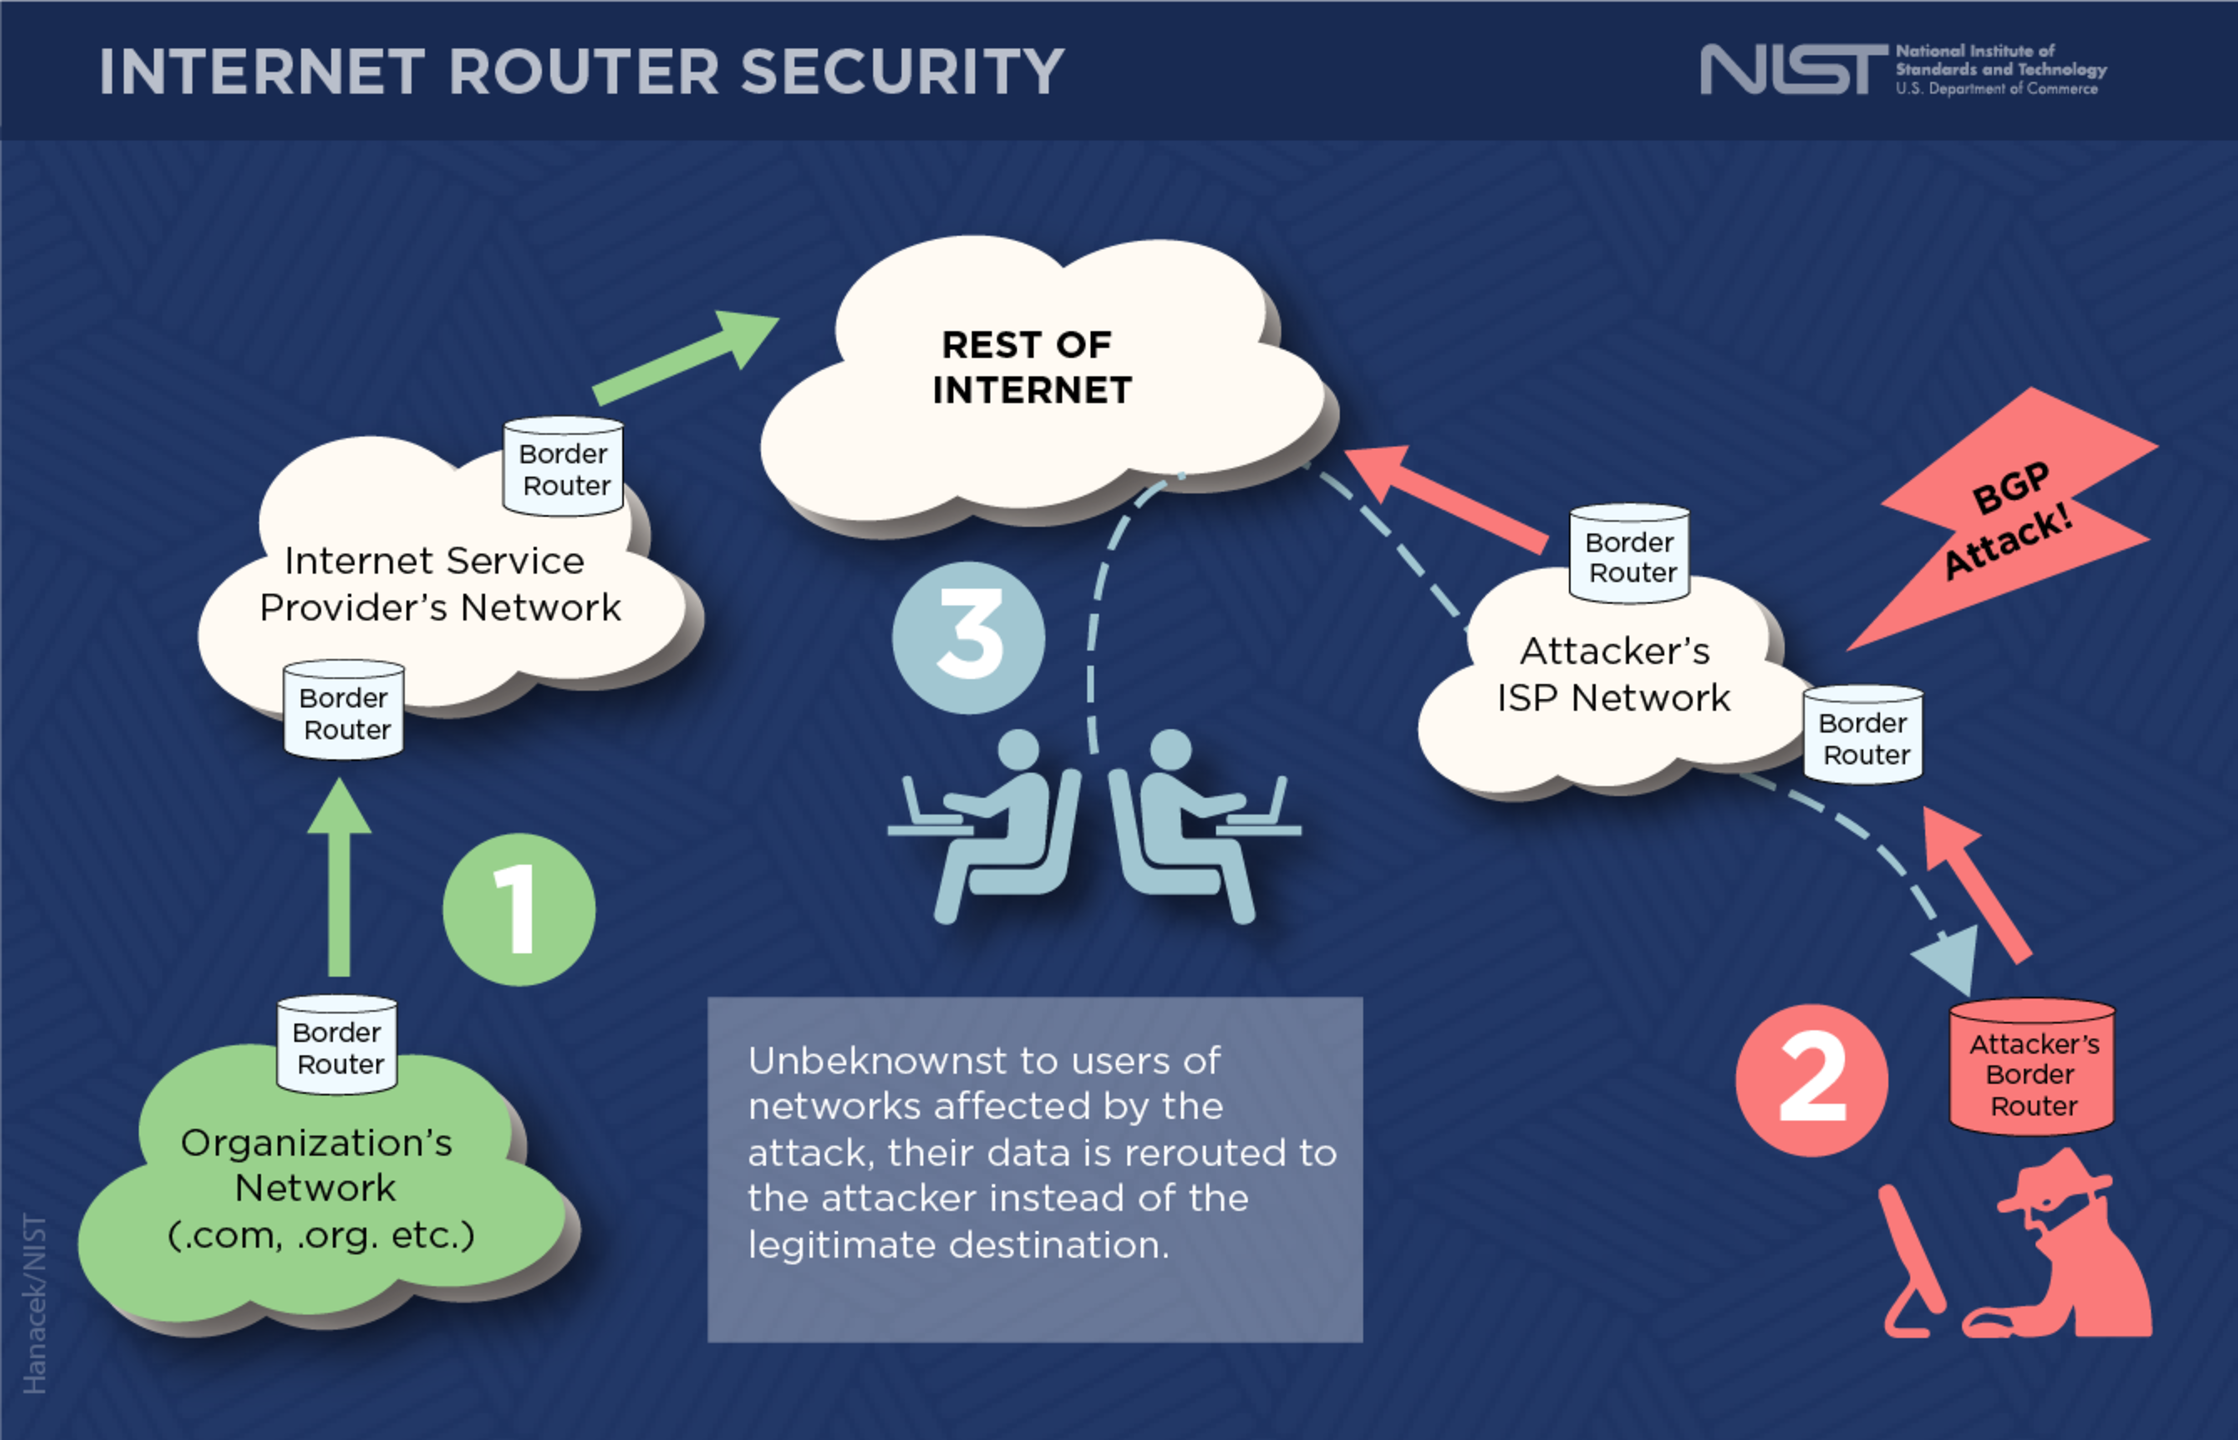 Border Gateway Protocol Security - Image 6